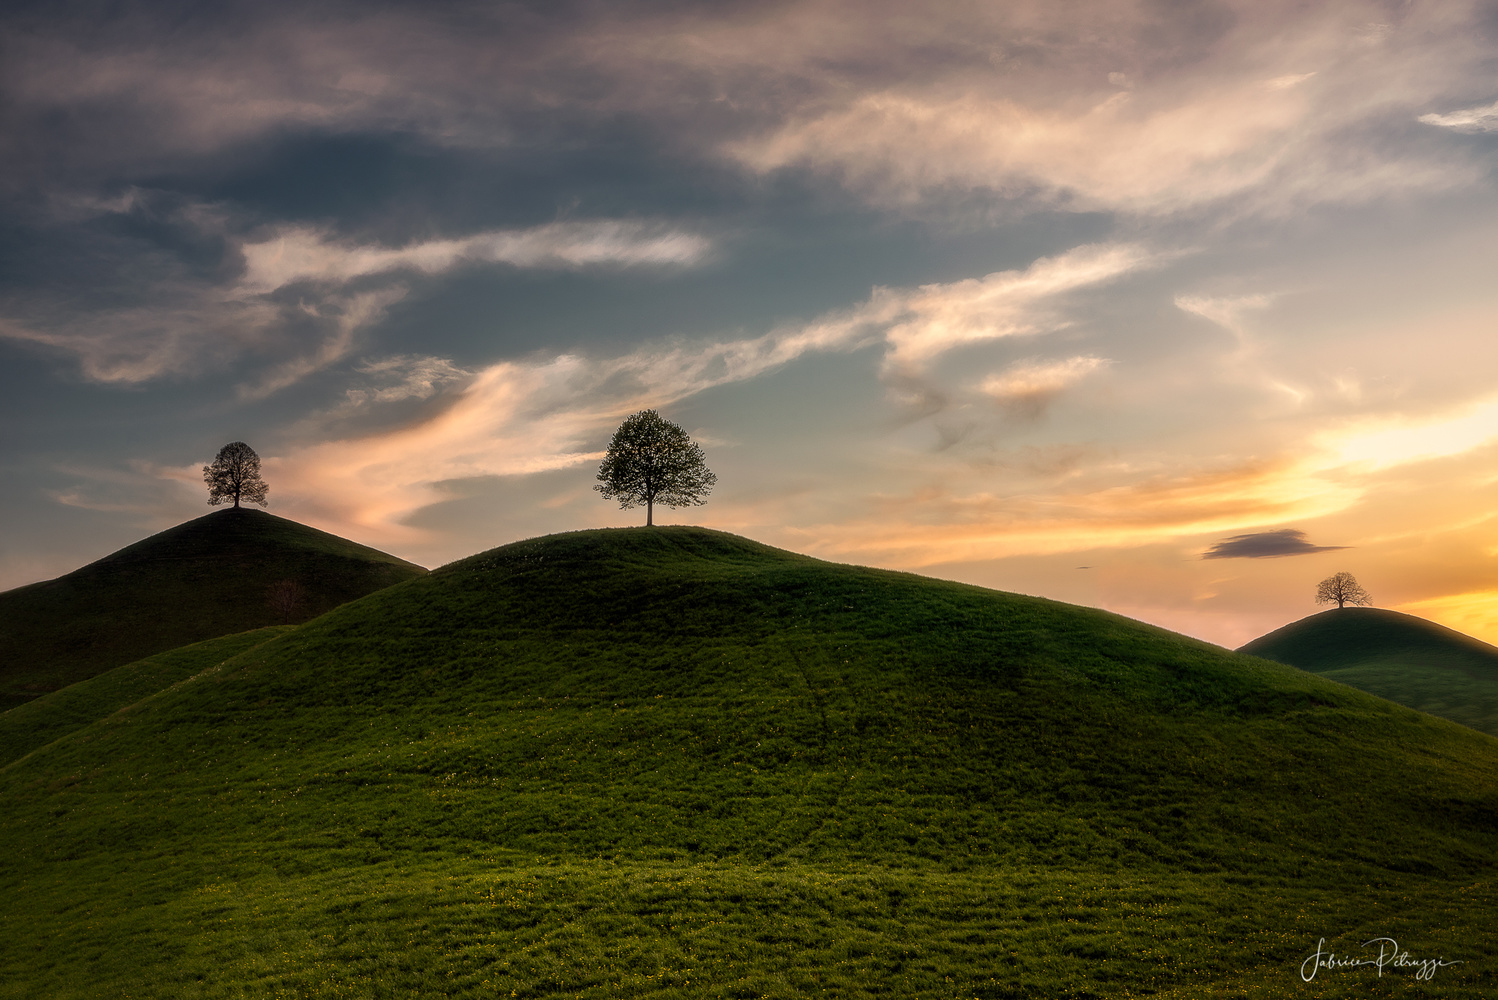 Confined Trees by Fabrice Petruzzi